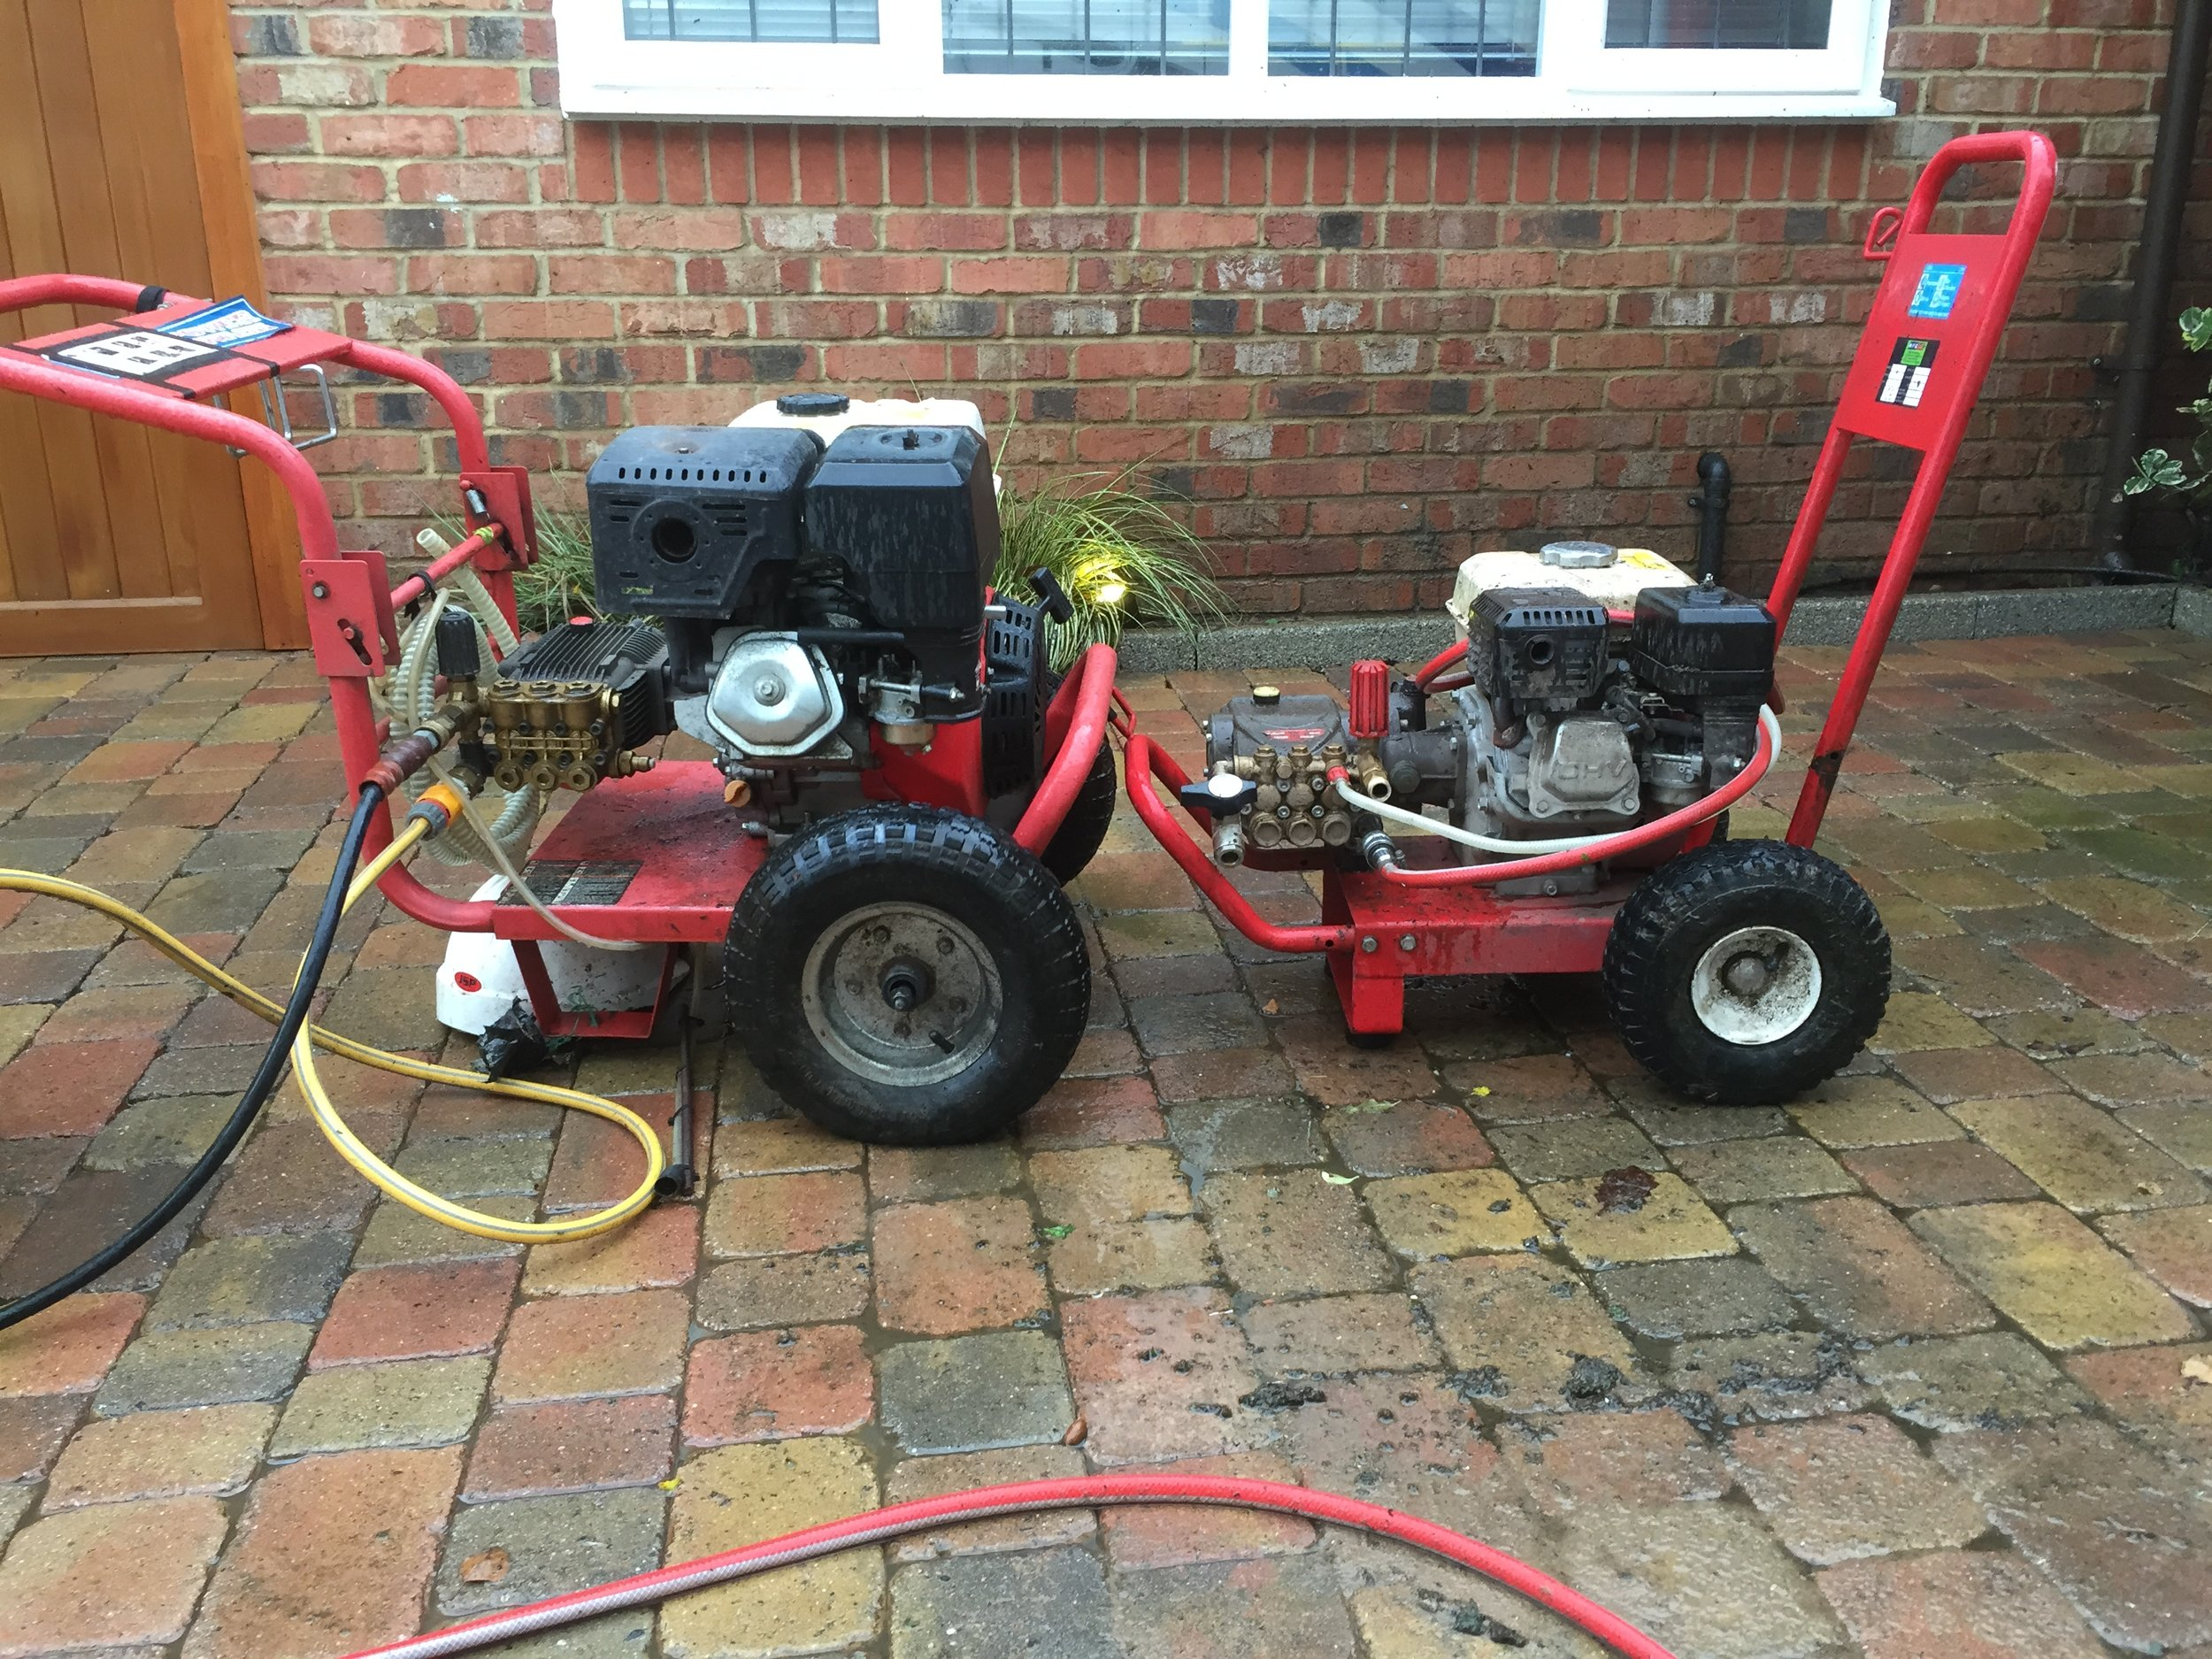 The reason why were so affordable. - With our range of pressure washers there are no stones left uncleaned. We are equipt for all domestic and commercial pressure washing projects. With our larger pressure washer we can be in and out faster than most pressure washing companieswithout compramising on quality. This also helps us to keep cost down for everyone.